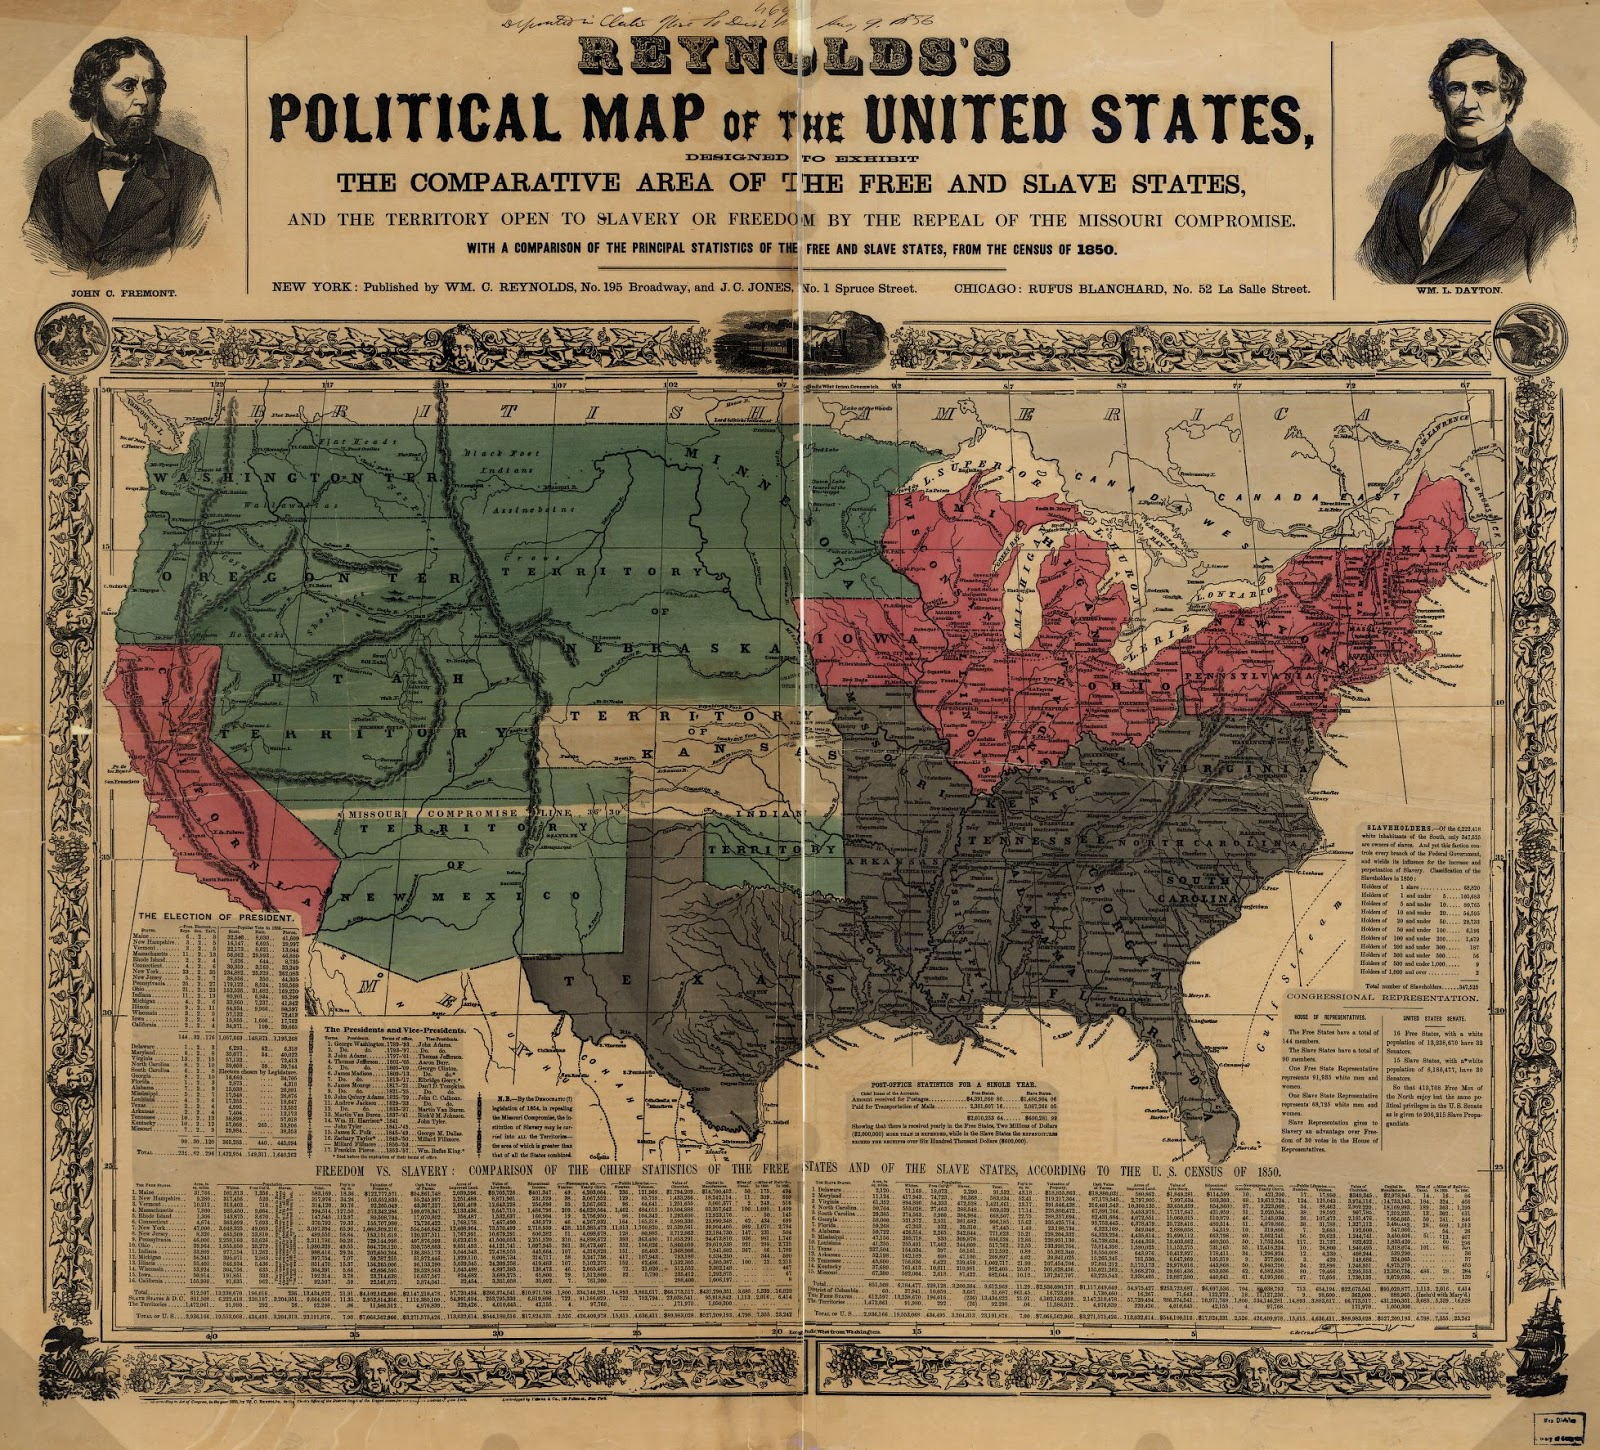 Political map of the United States (1850)